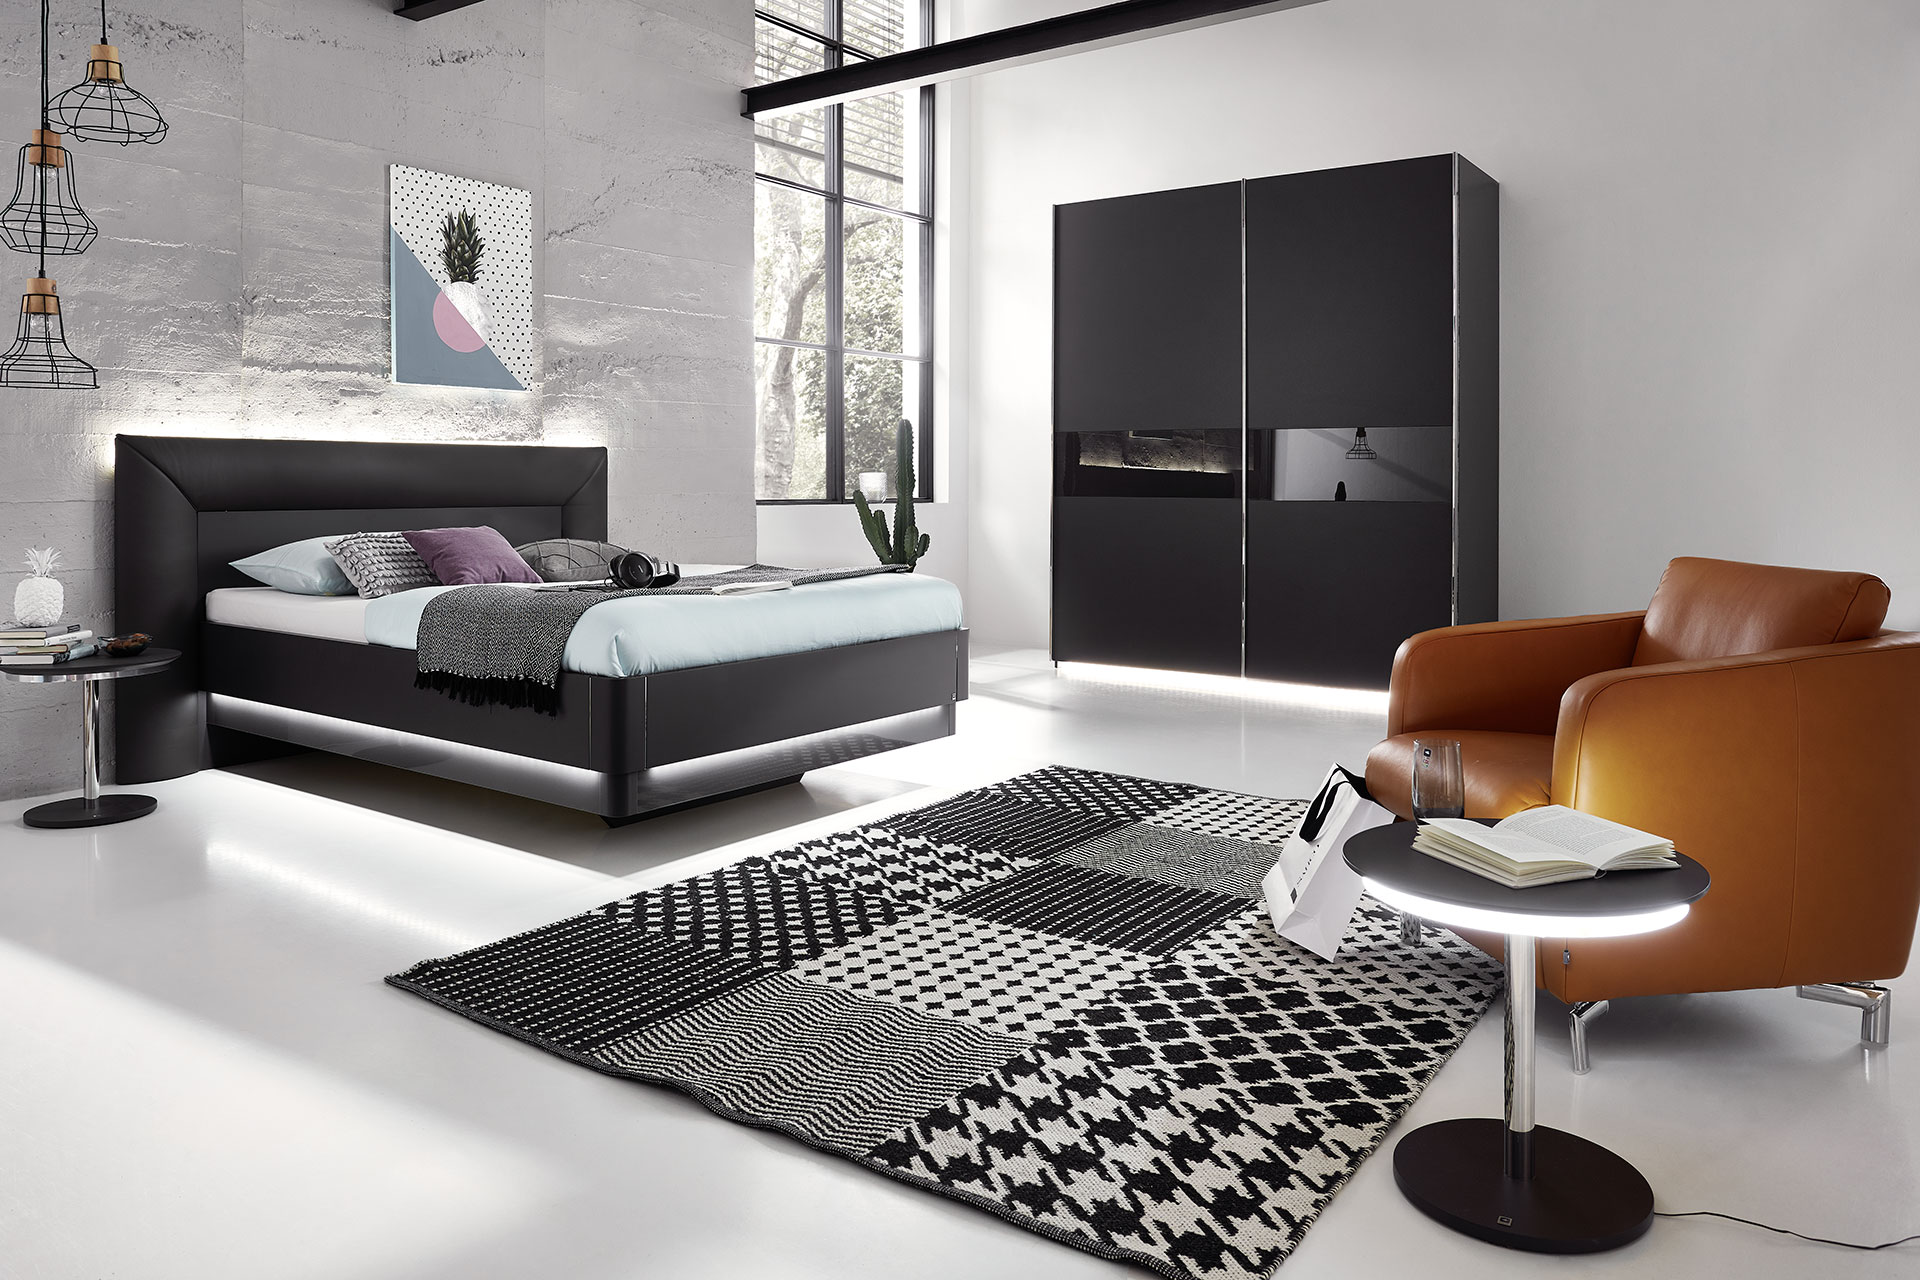 Bedroom-SHINE-2-Geha